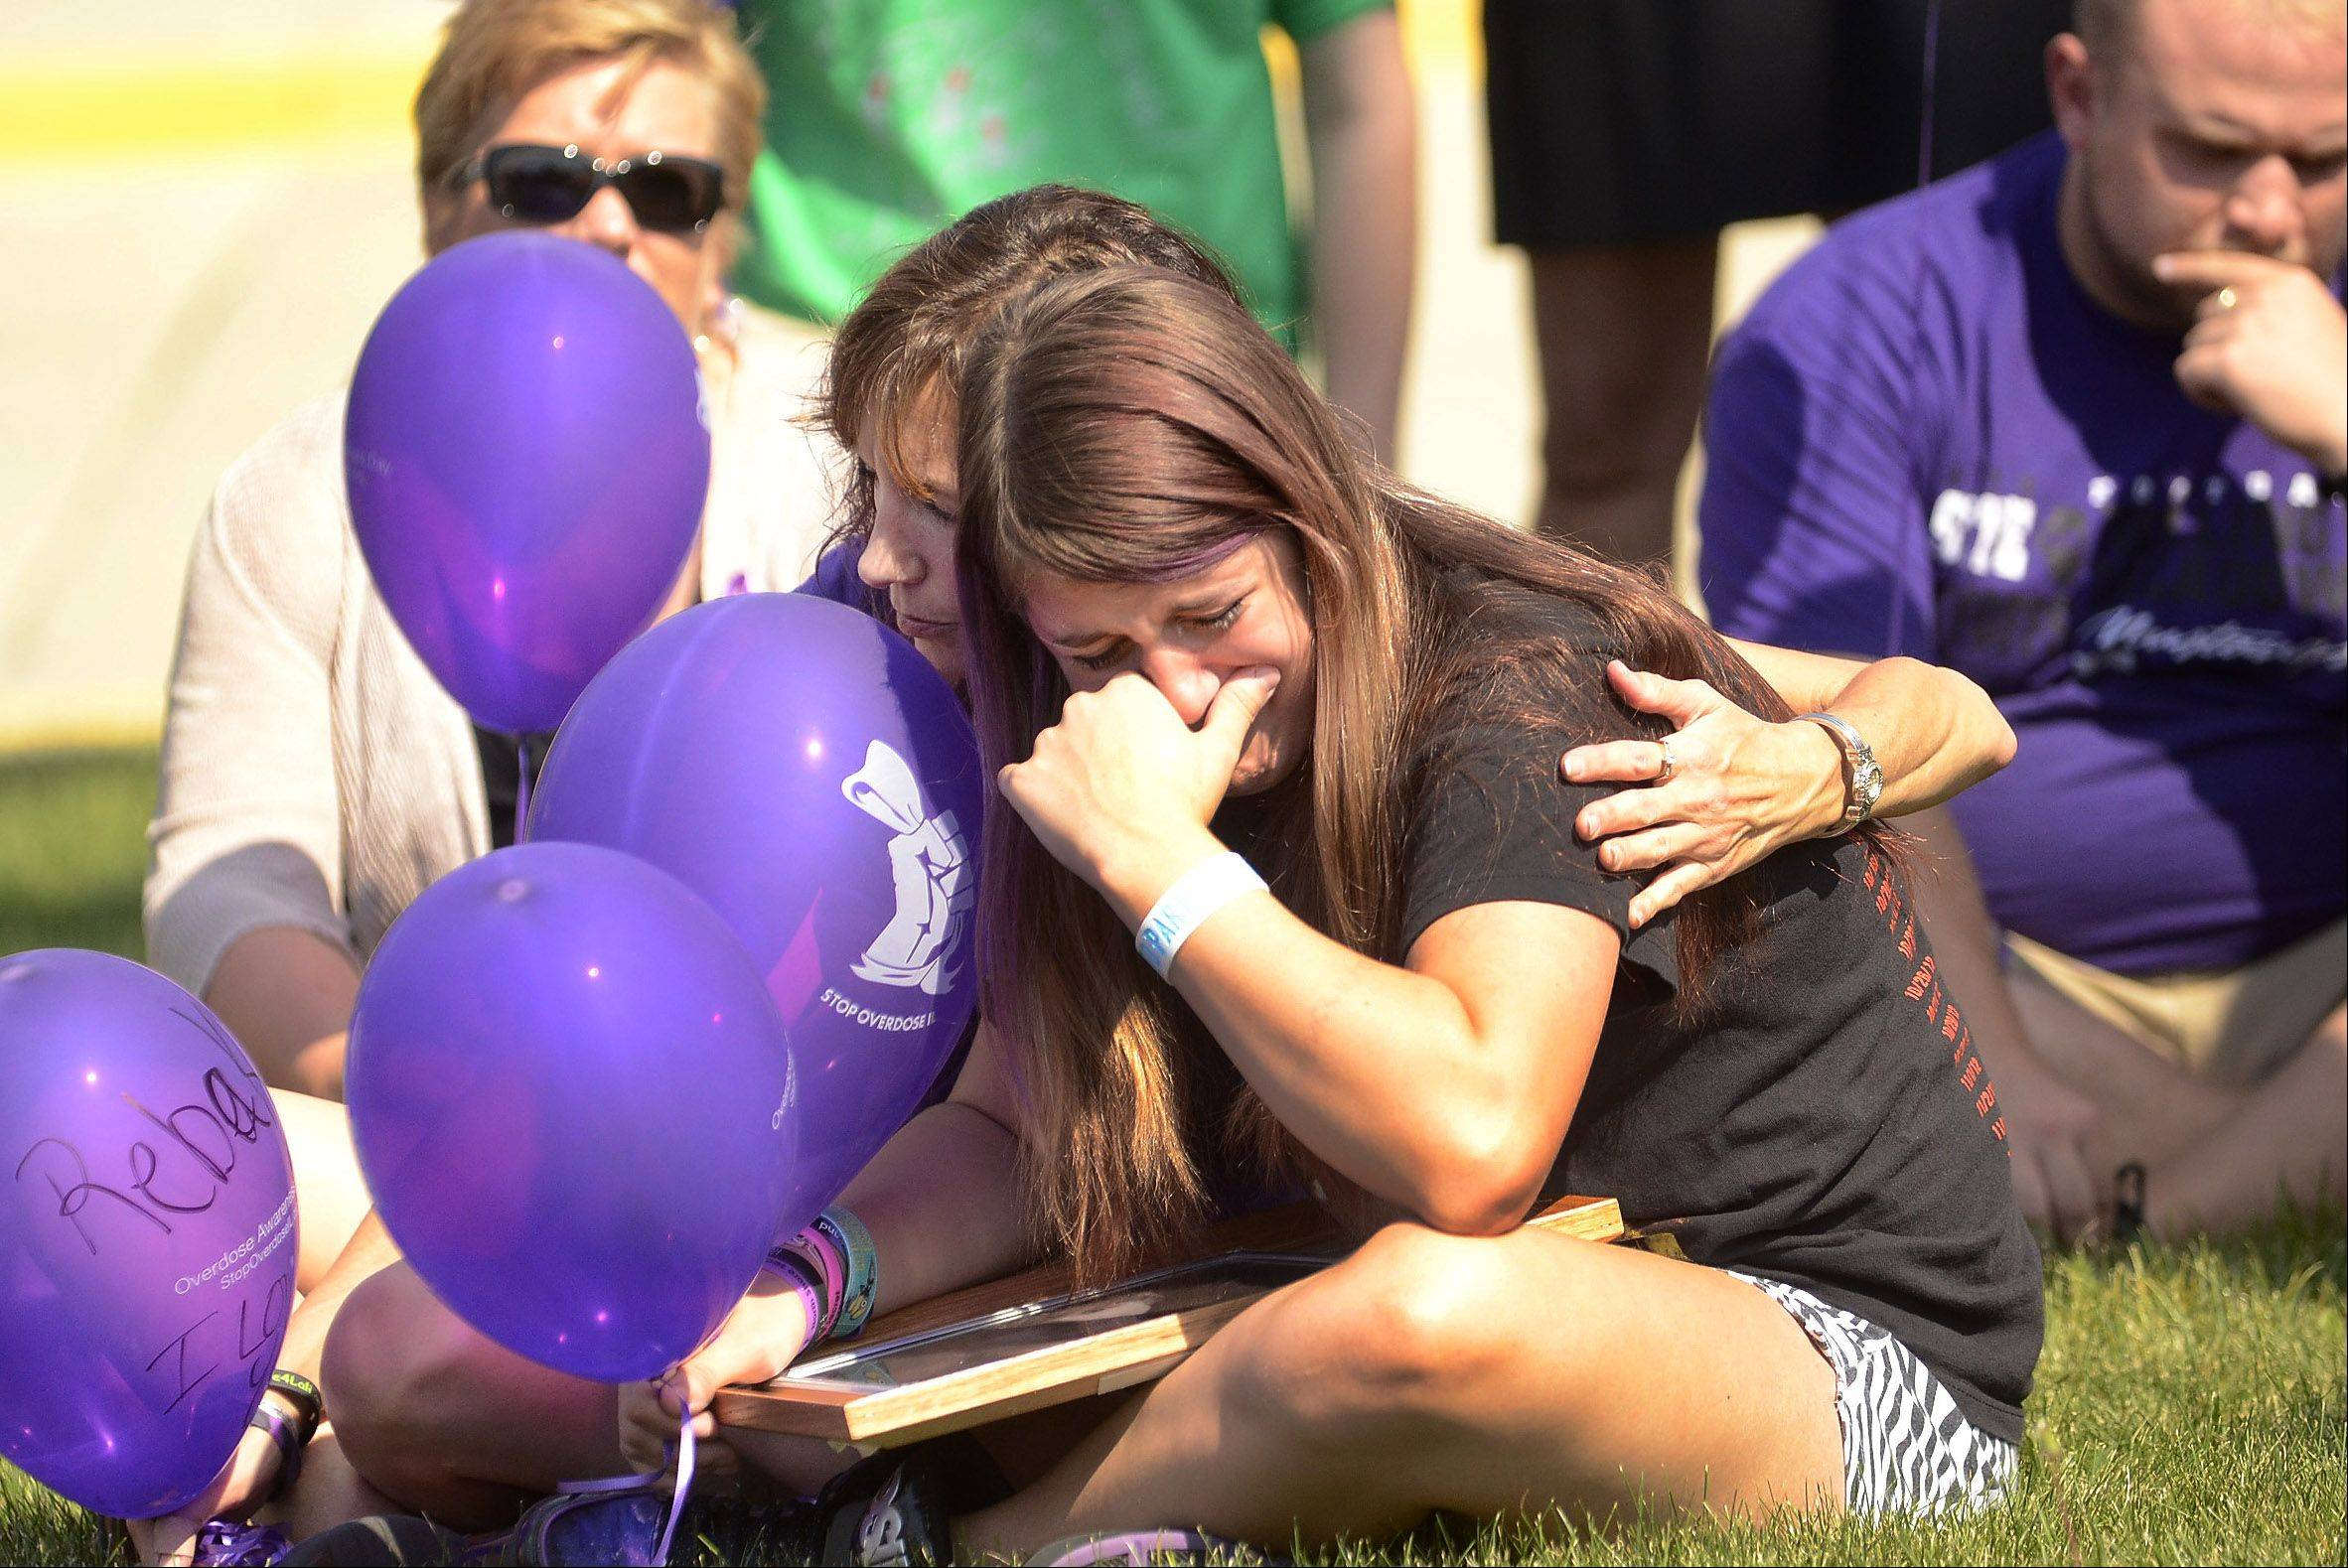 Bre Bjornberg of Schaumburg is consoled by her mom Kari Bjornberg as they remember Bre's brother Michael who died of an overdose during the Overdose Awareness Week ceremony at Roosevelt University's Schaumburg campus.